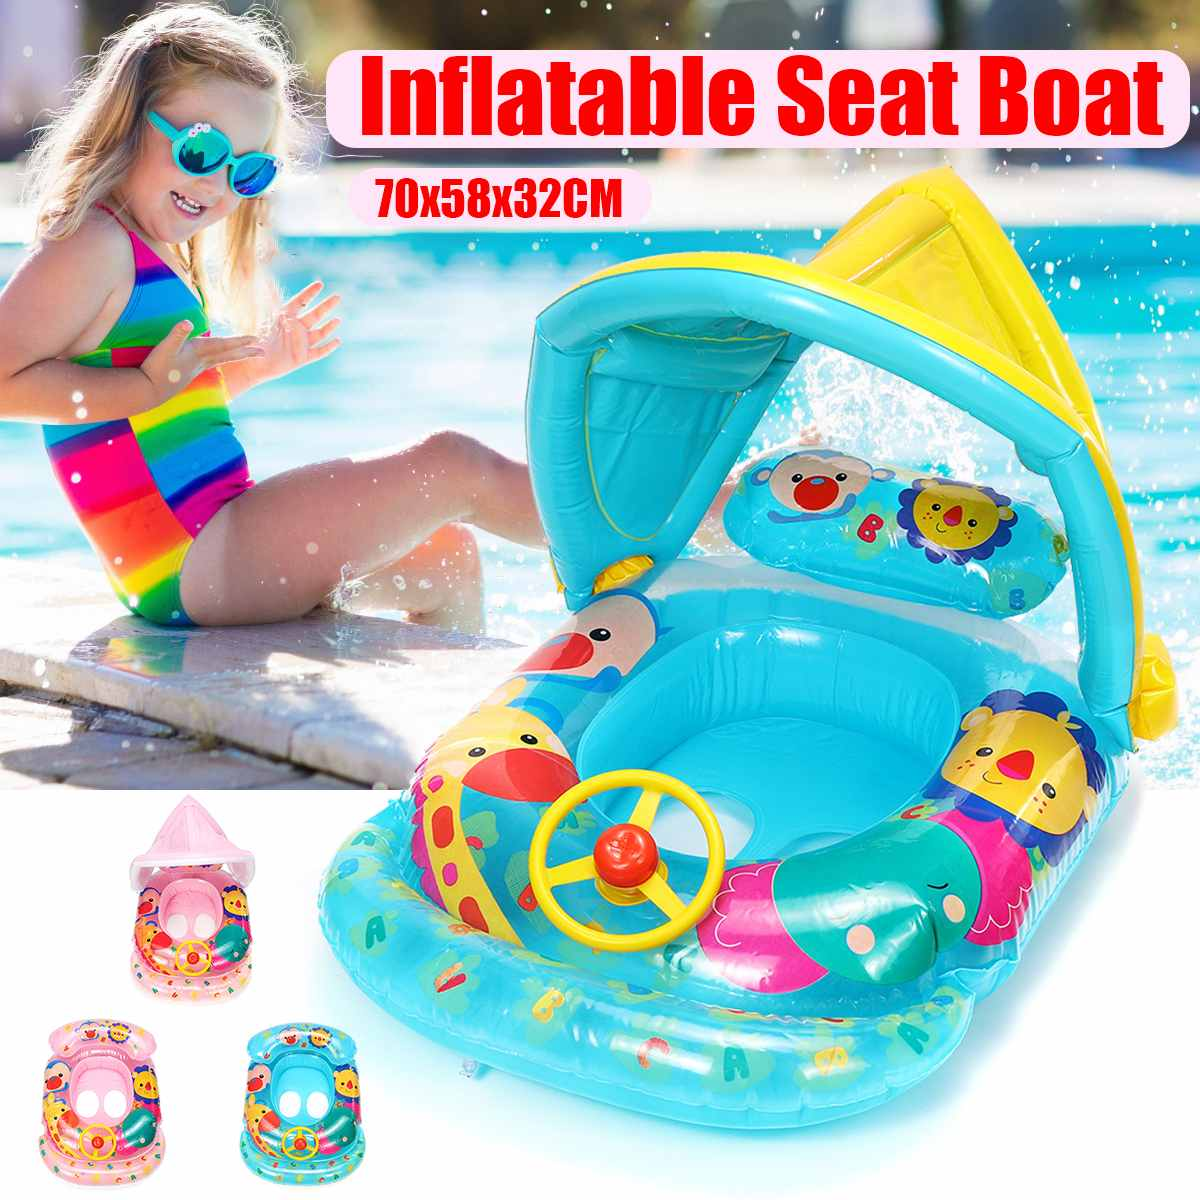 Summer Inflatable Sunshade Baby Kids Float Seat Boat Children Swim Pool Swimming Ring Water Fun Pool Toys Removable Sunshade